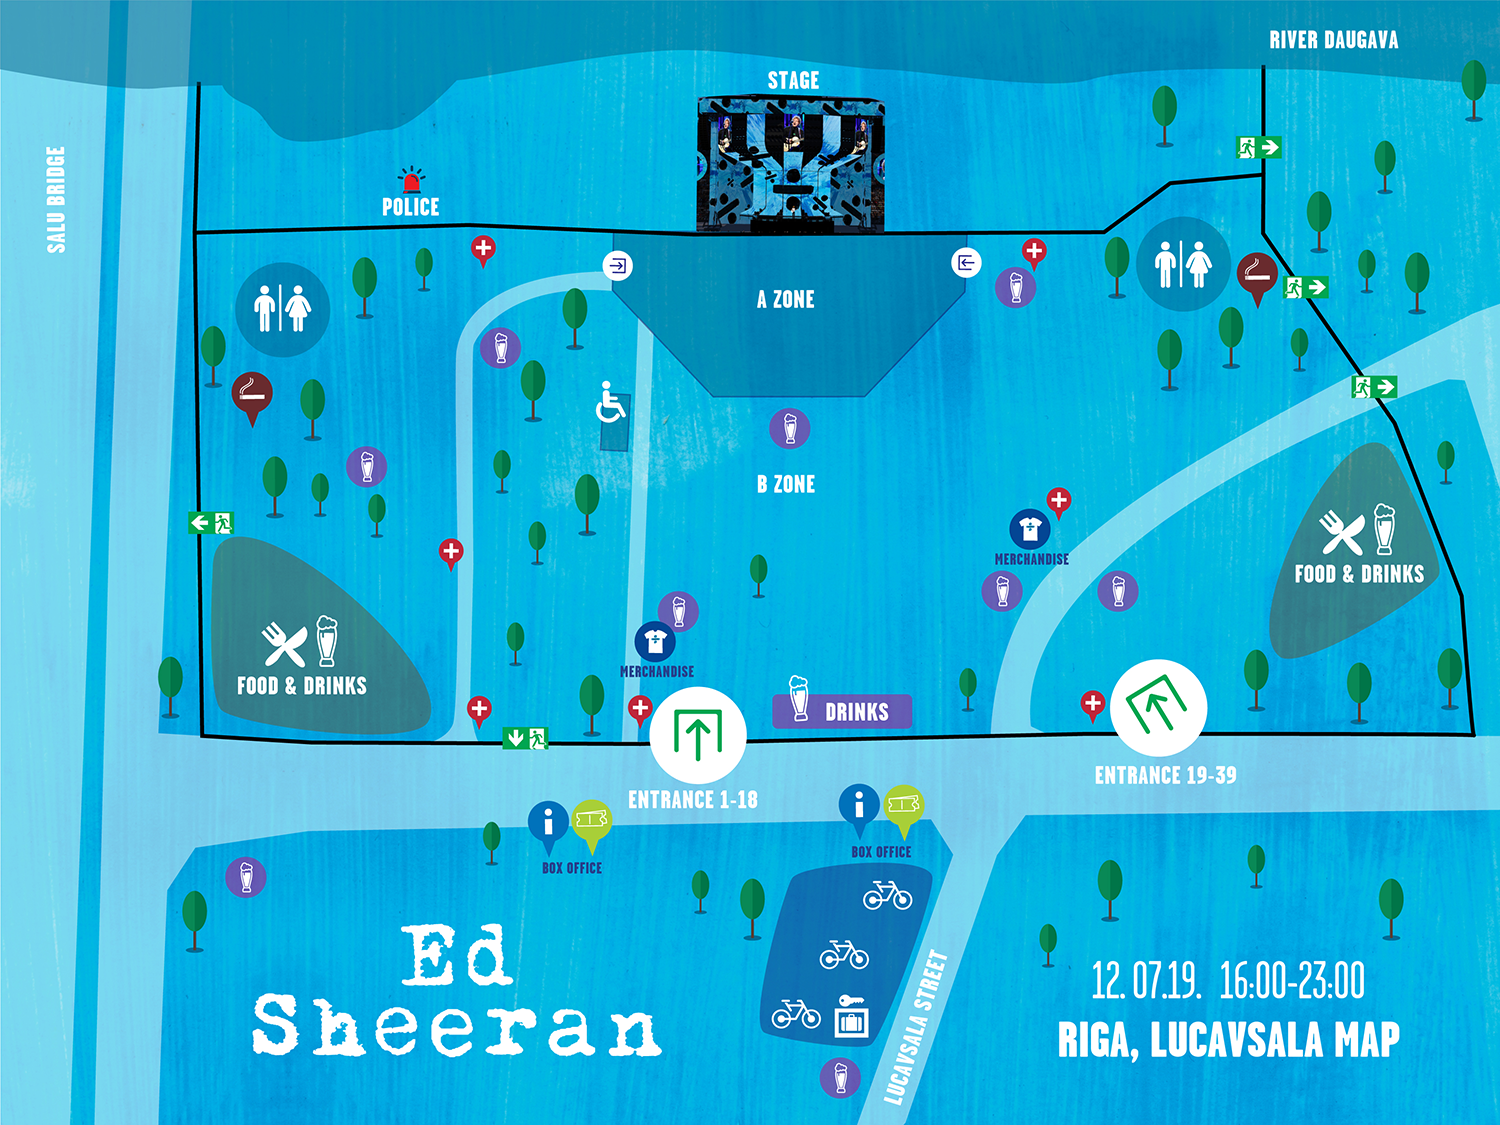 Essential information for visitors of Ed Sheeran concert